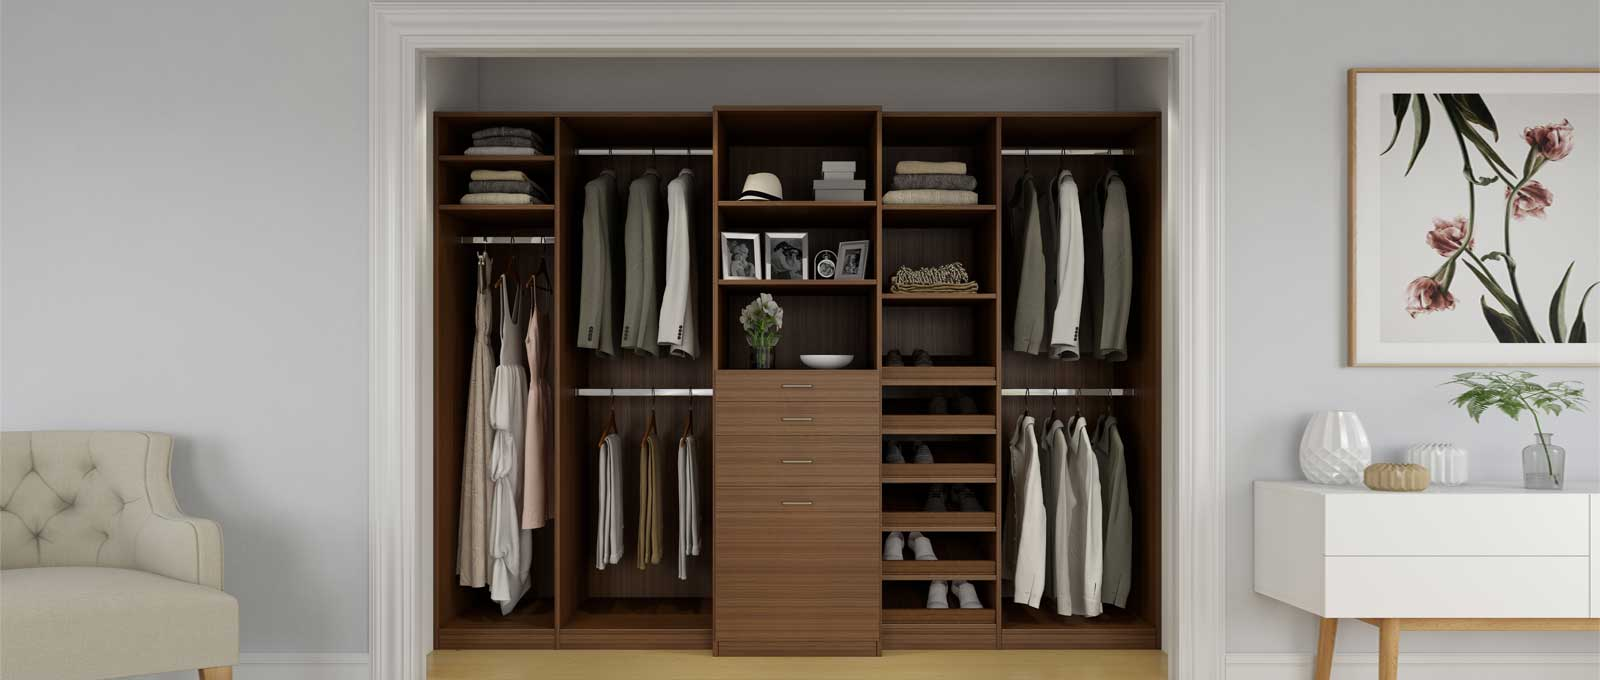 Custom Bedroom Closets And Closet Systems